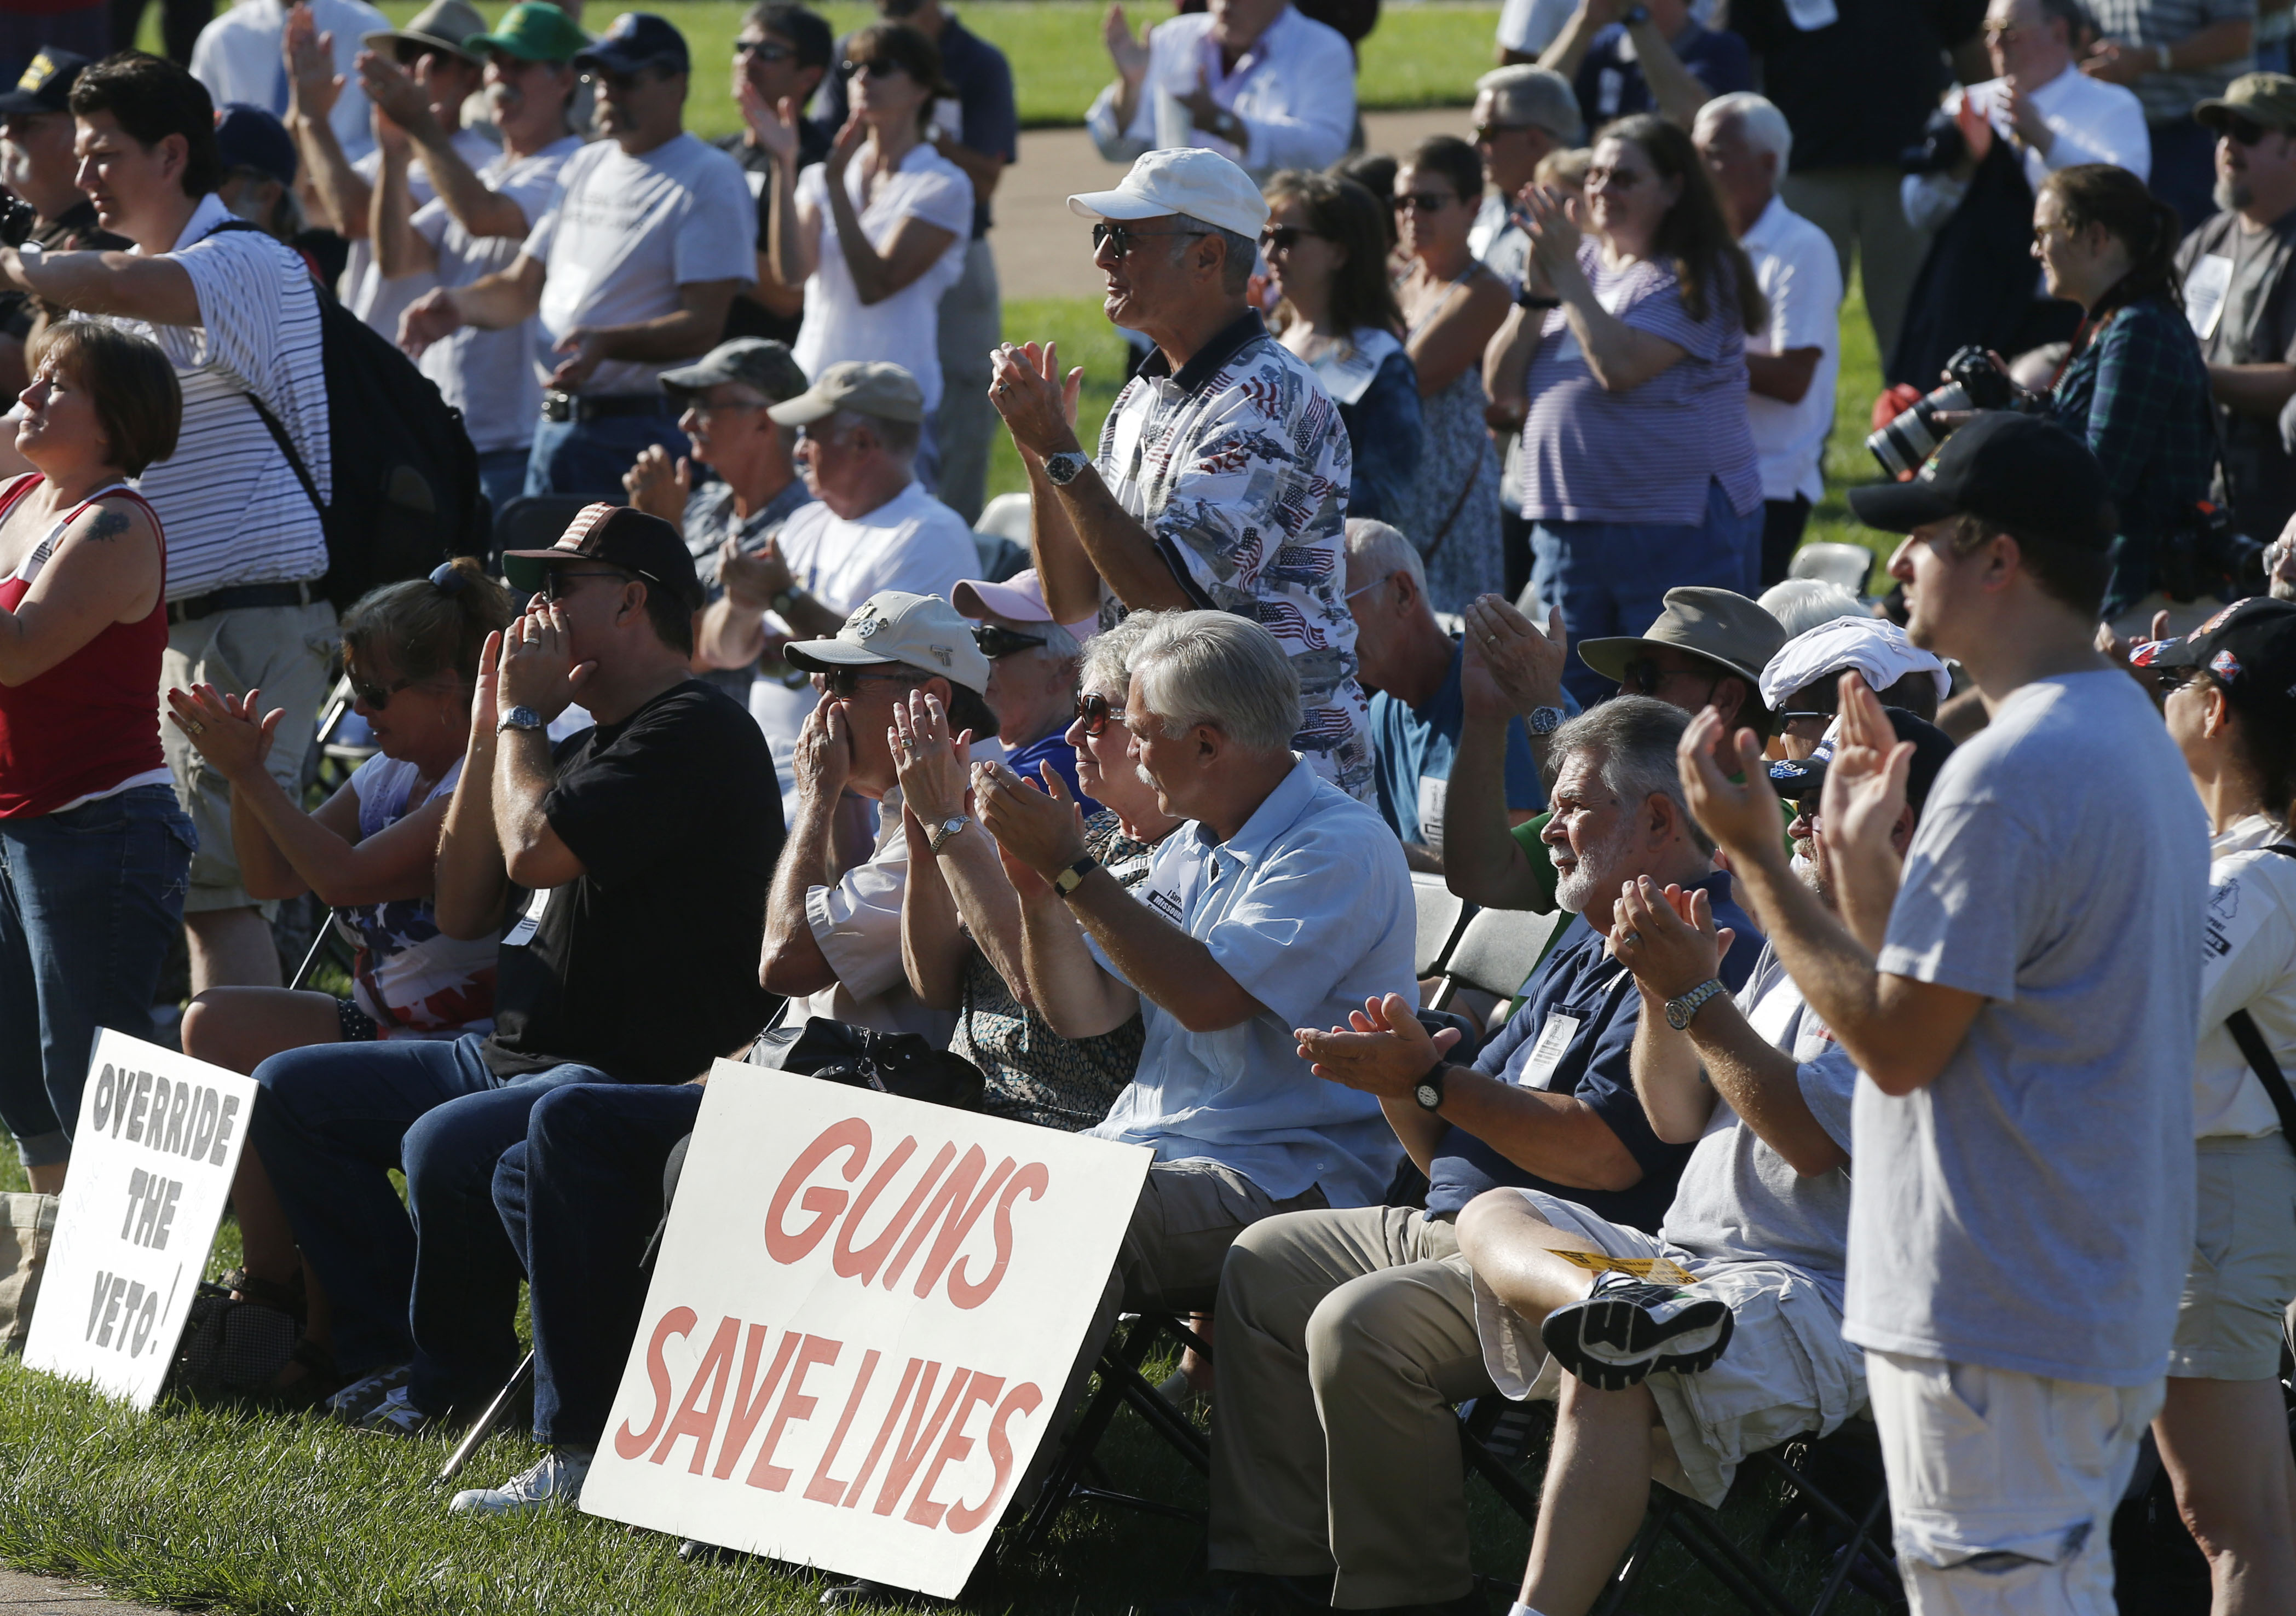 Participants applaud during a rally to override Gov. Jay Nixon's veto of a gun bill on the south lawn of the Missouri State Capital in Jefferson City, Mo., Wednesday, Sept. 11, 2013.